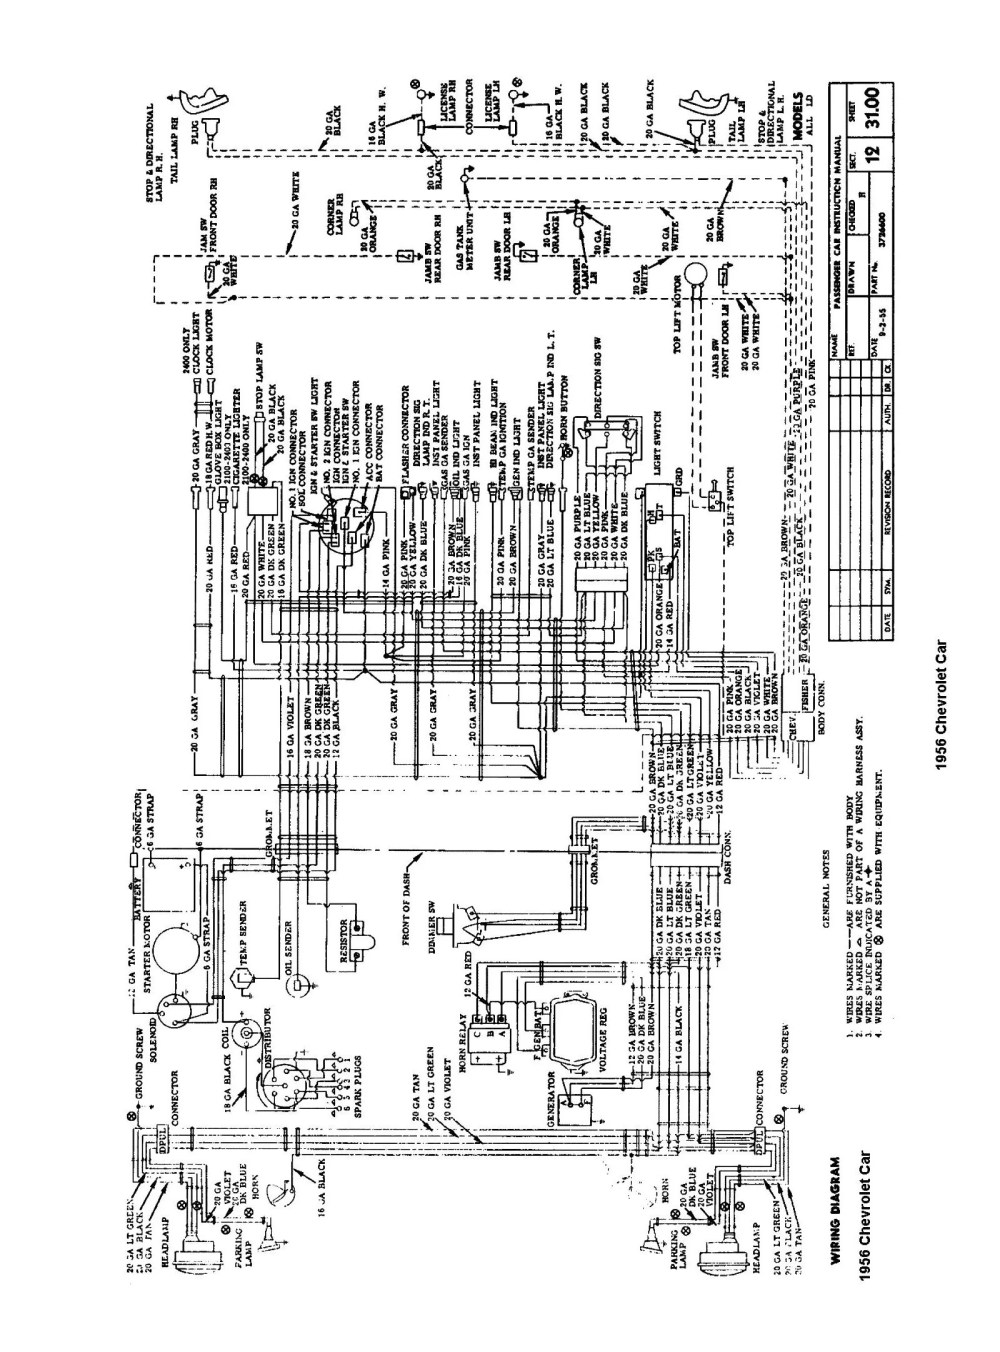 medium resolution of 55 chevy fuse box diagram wiring diagram sheet 1955 chevy fuse panel on electrical junction box with posts